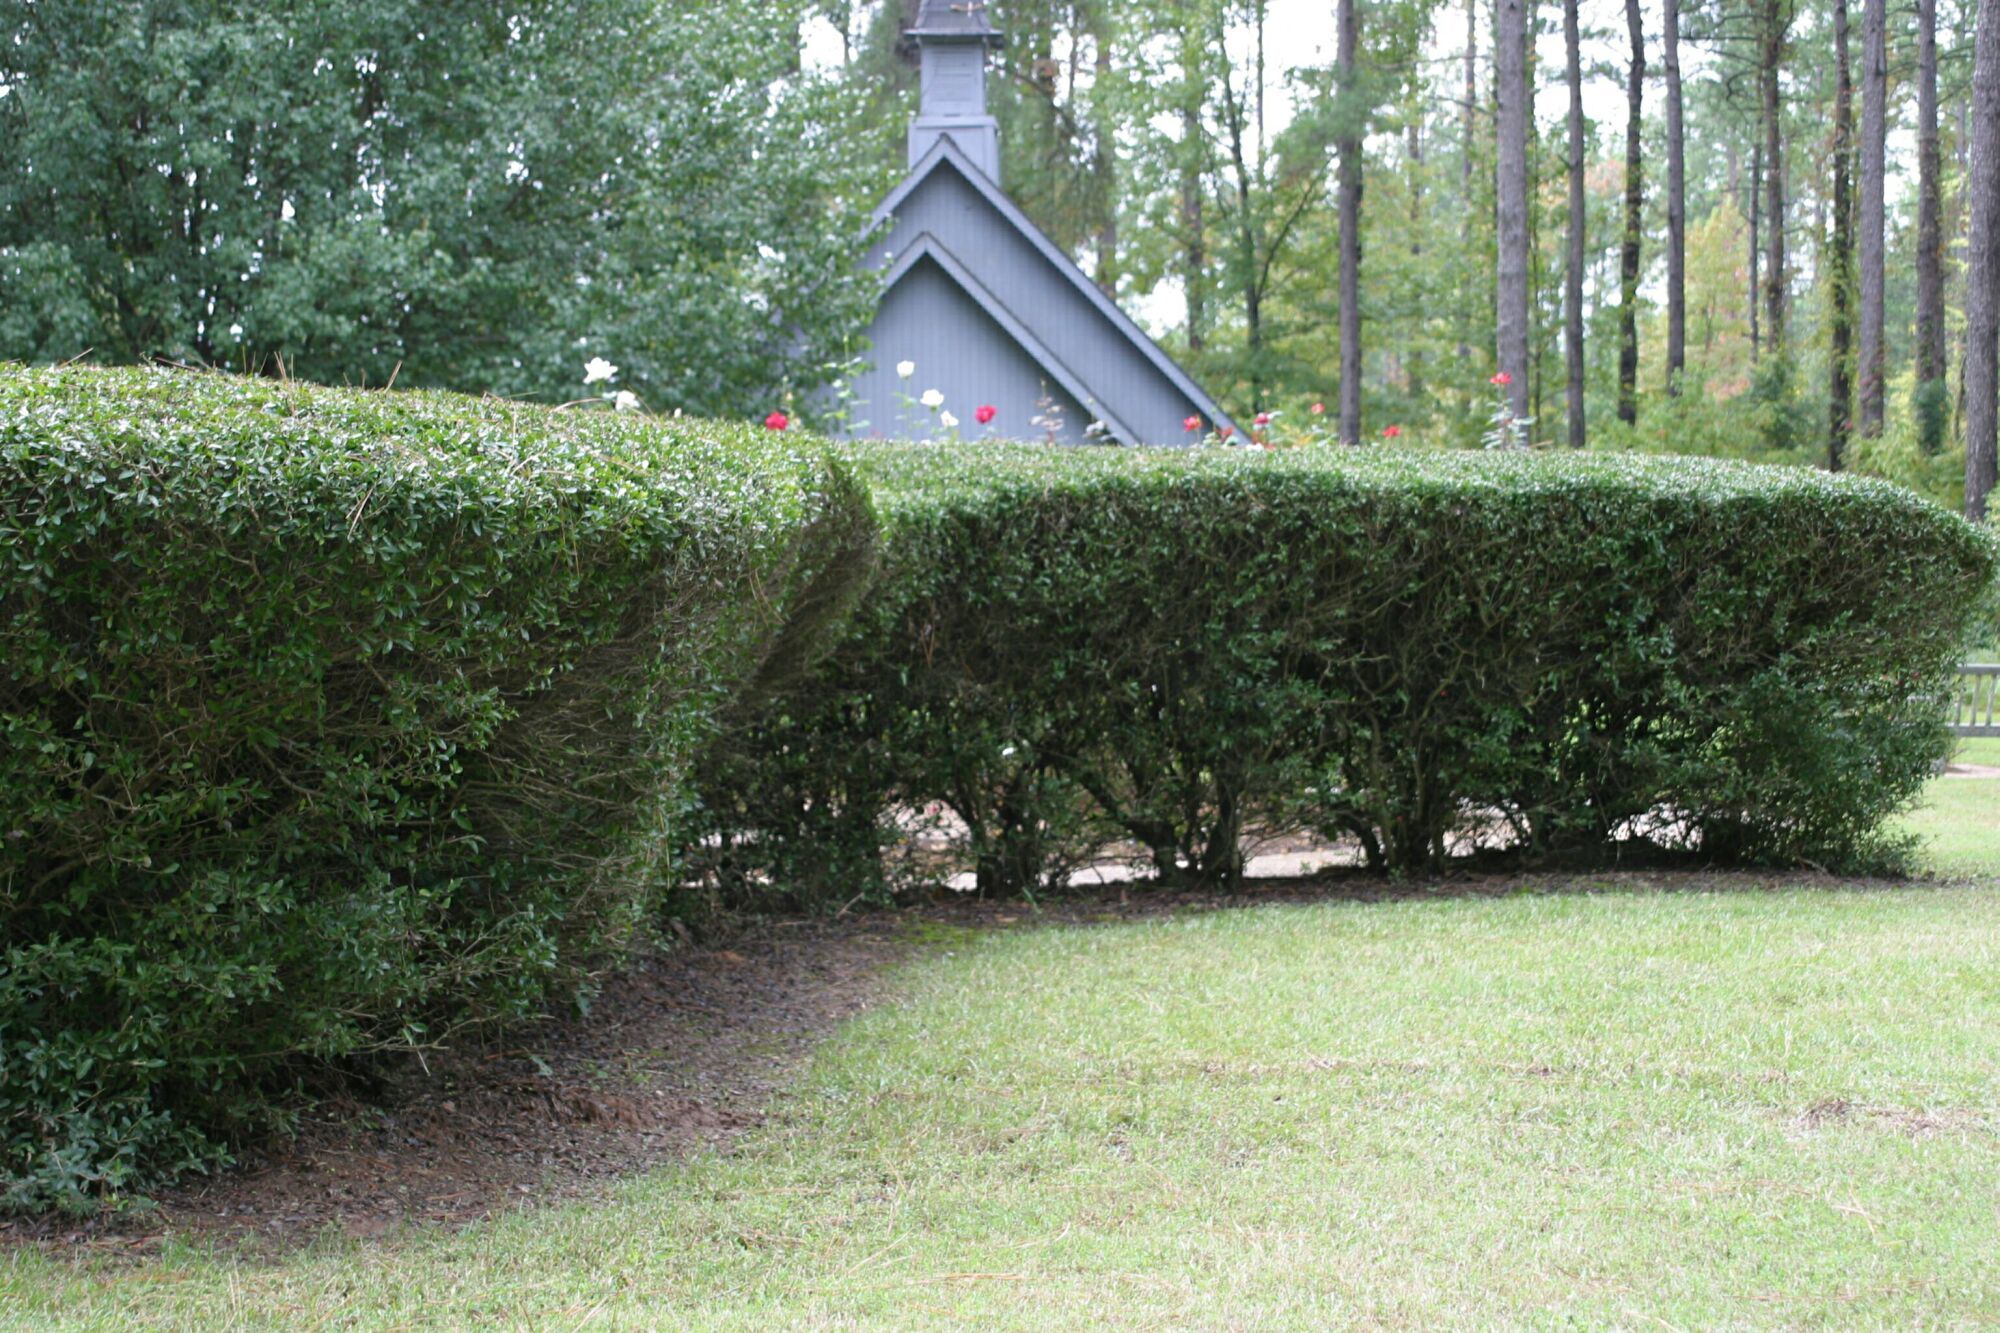 Yaupon hedge trimmed topheavy and losing lower foliage density